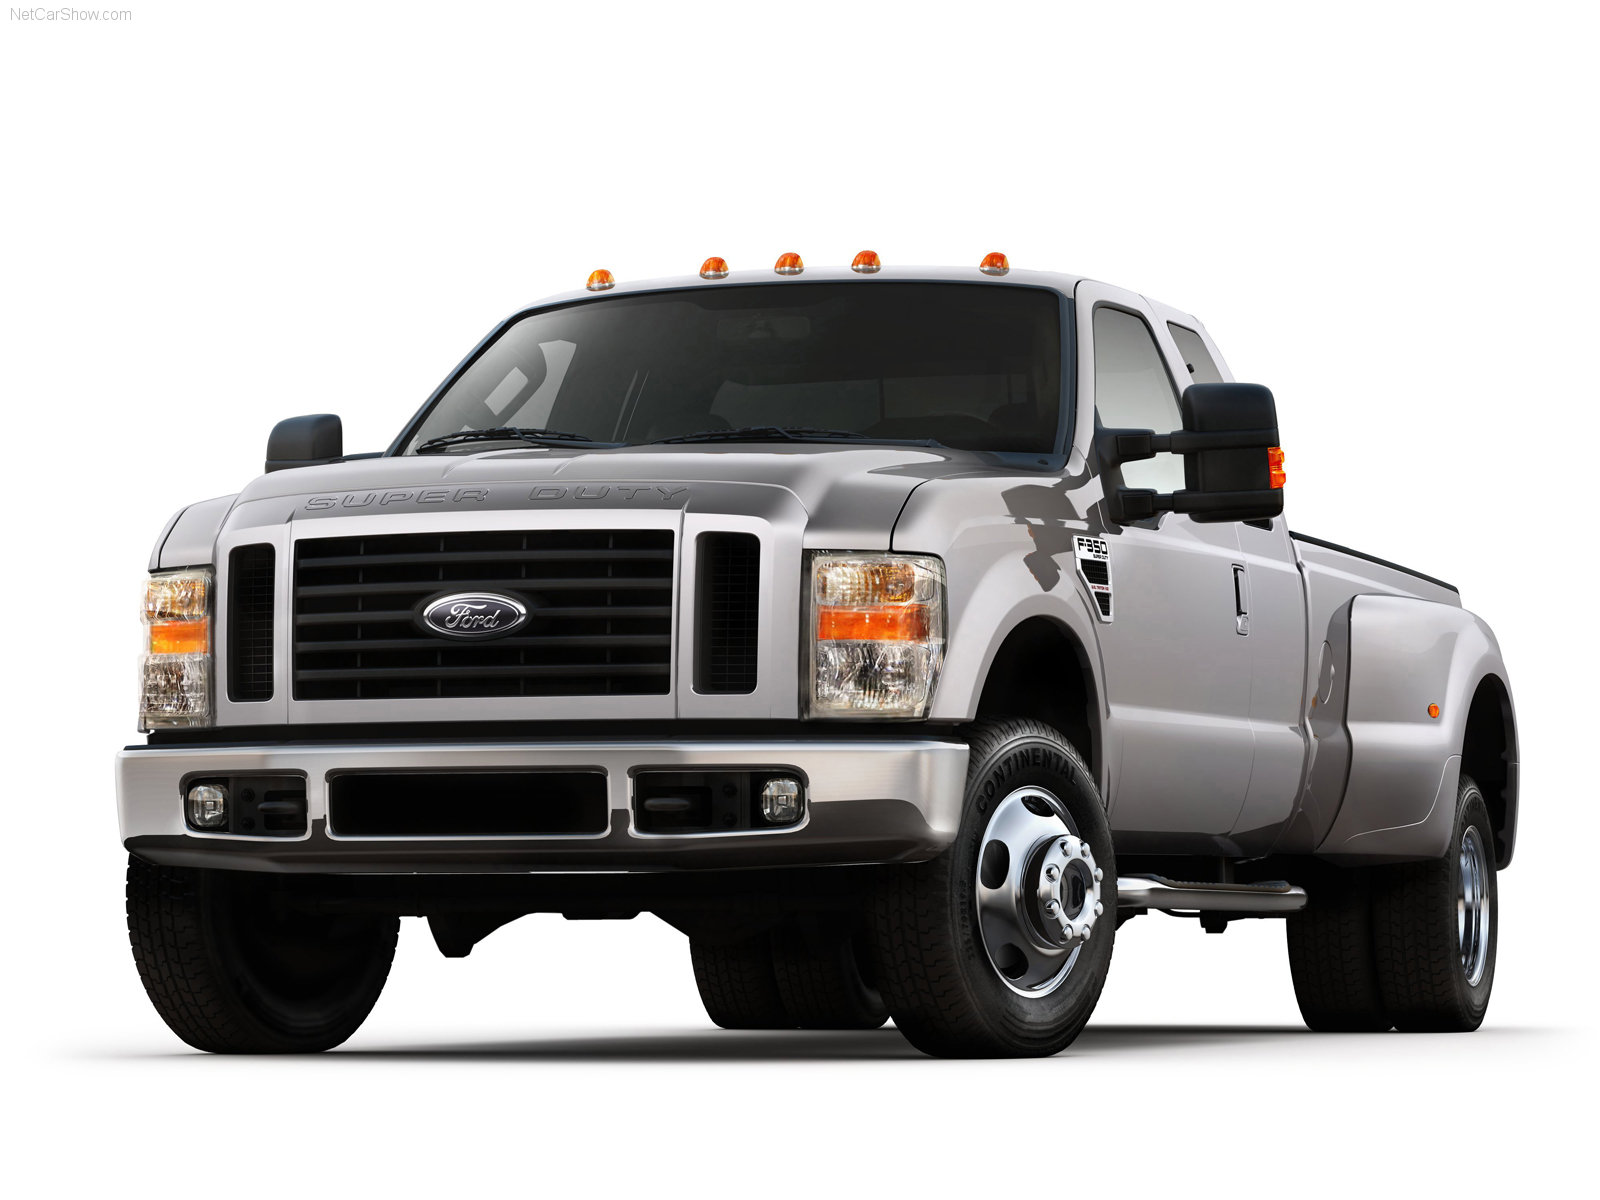 2004 Ford F-350 Super Duty #6